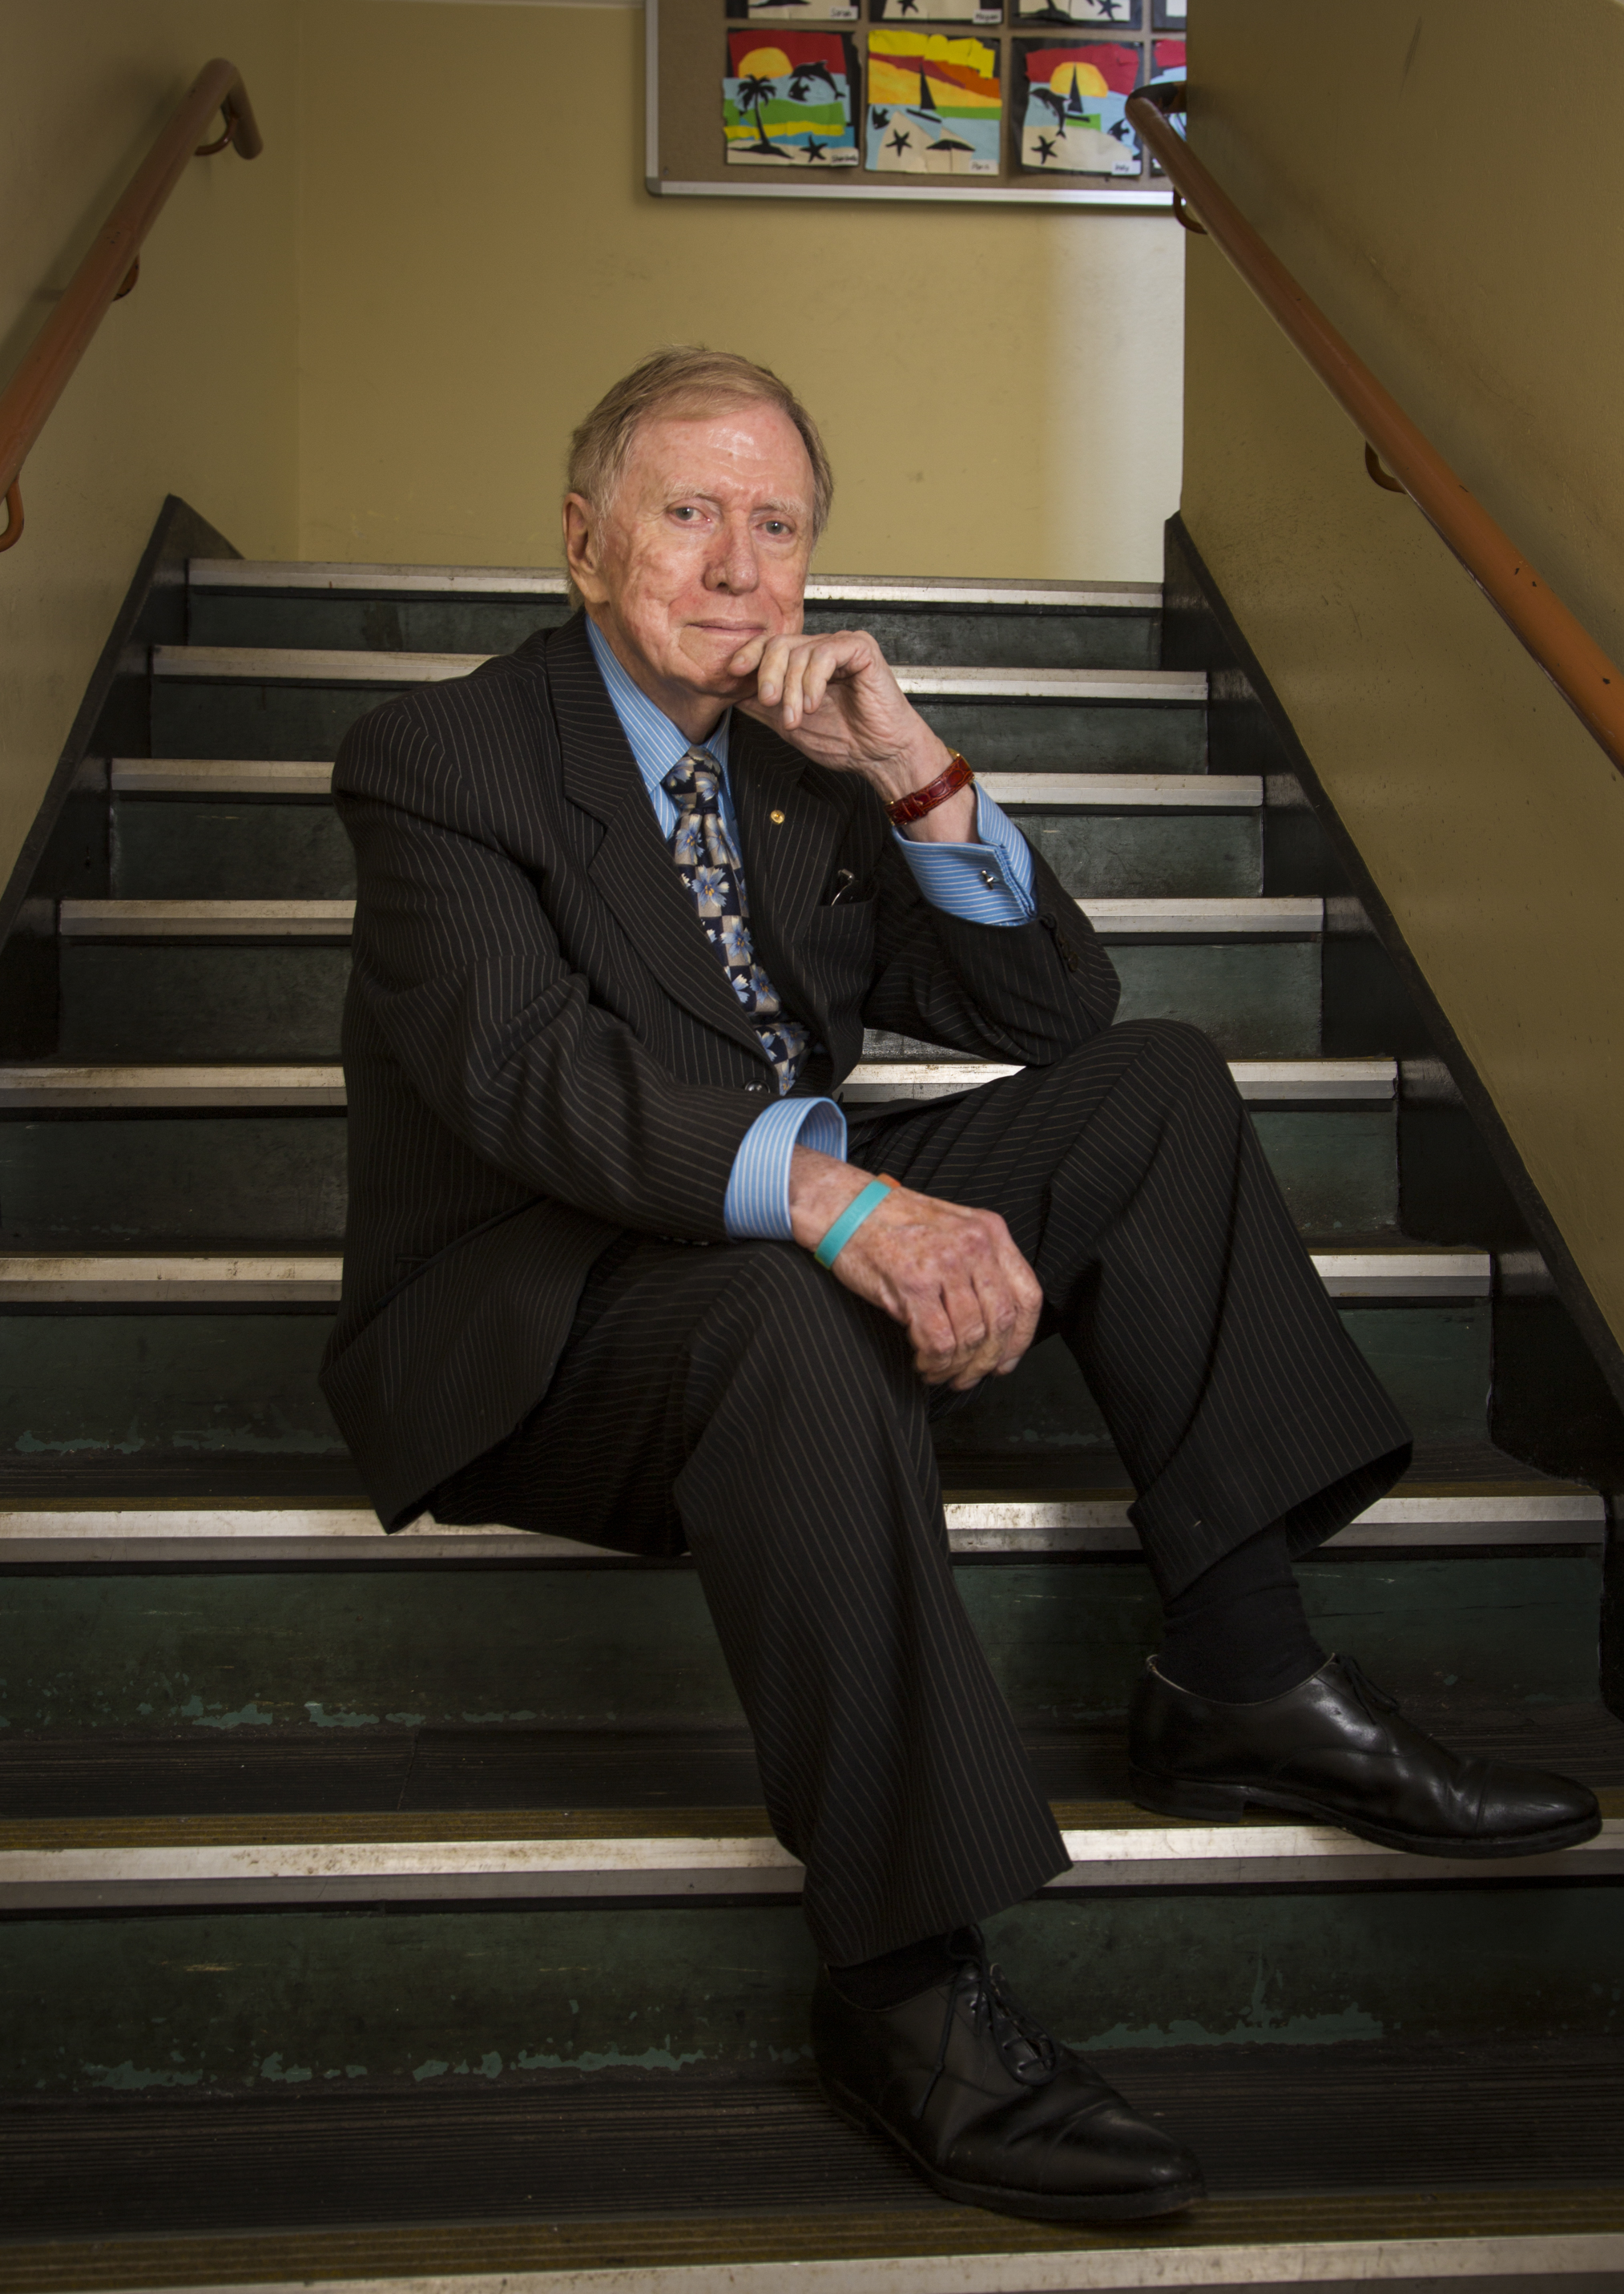 Michael Kirby, pictured on the steps of the old infants' building at his first school, now Strathfield North Public School.